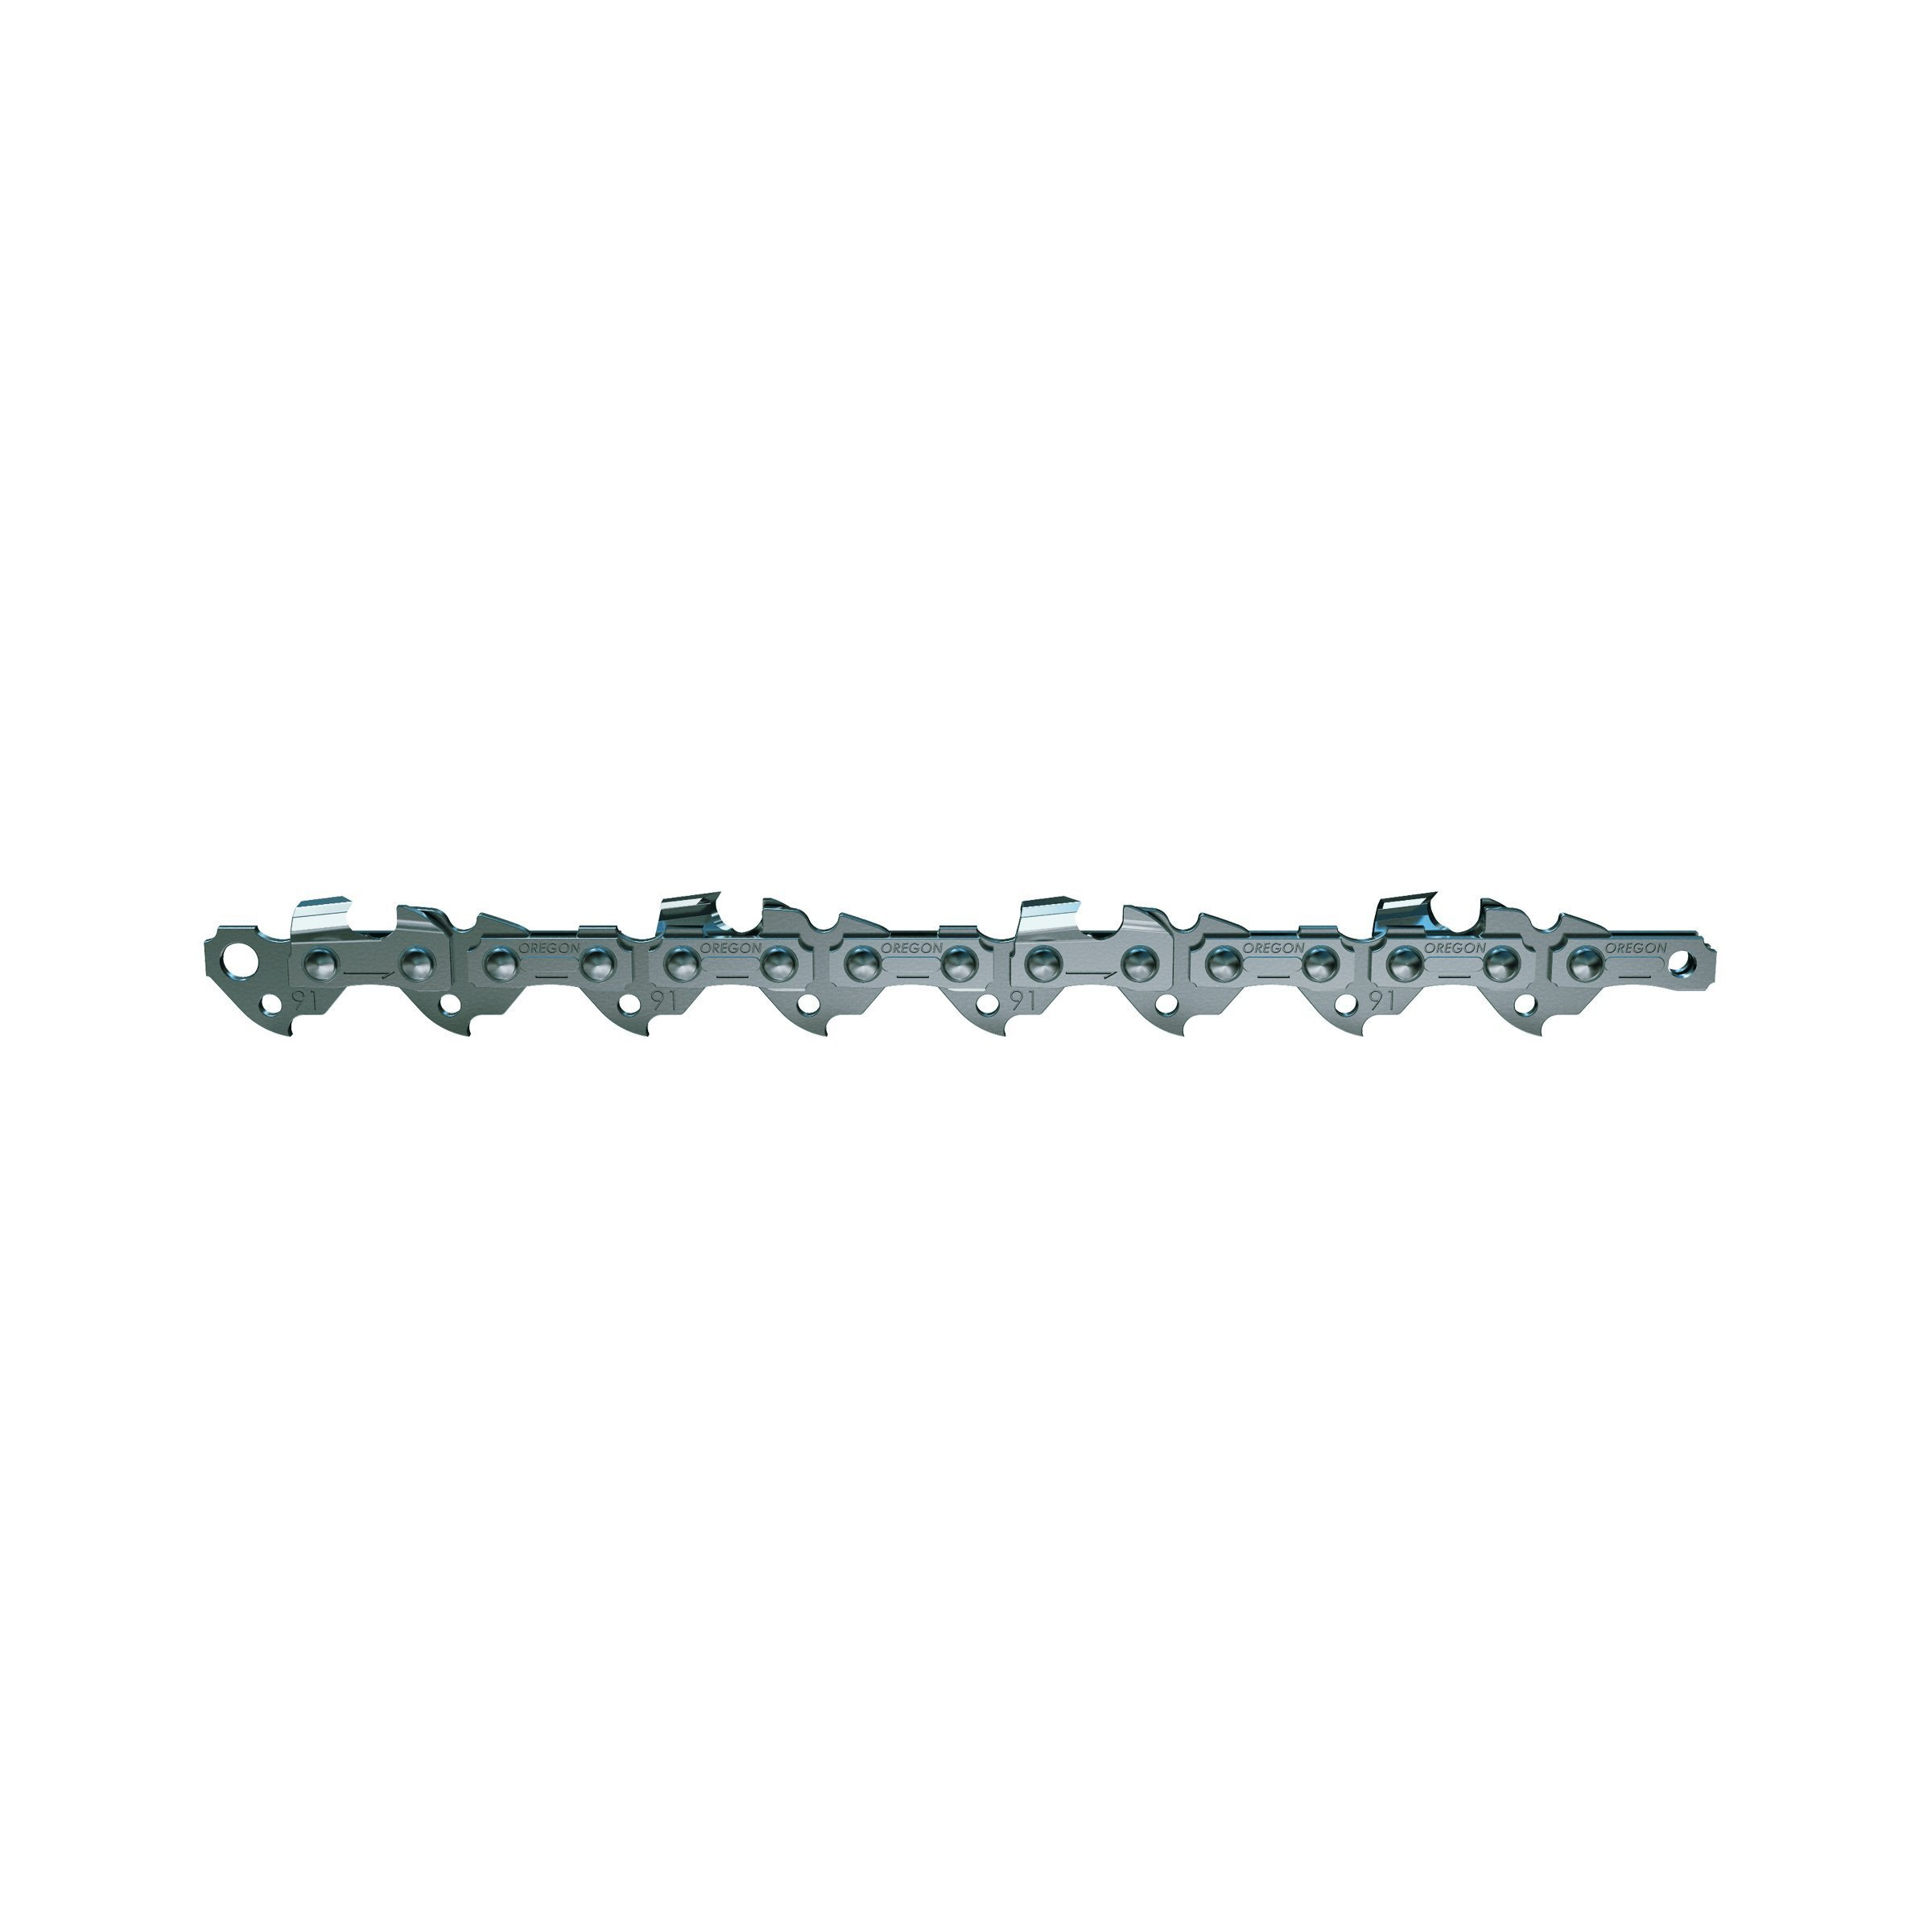 (2) 91PX033G Oregon 8'' chainsaw chain 91-33 replace 91PJ033X for Model 68862 +